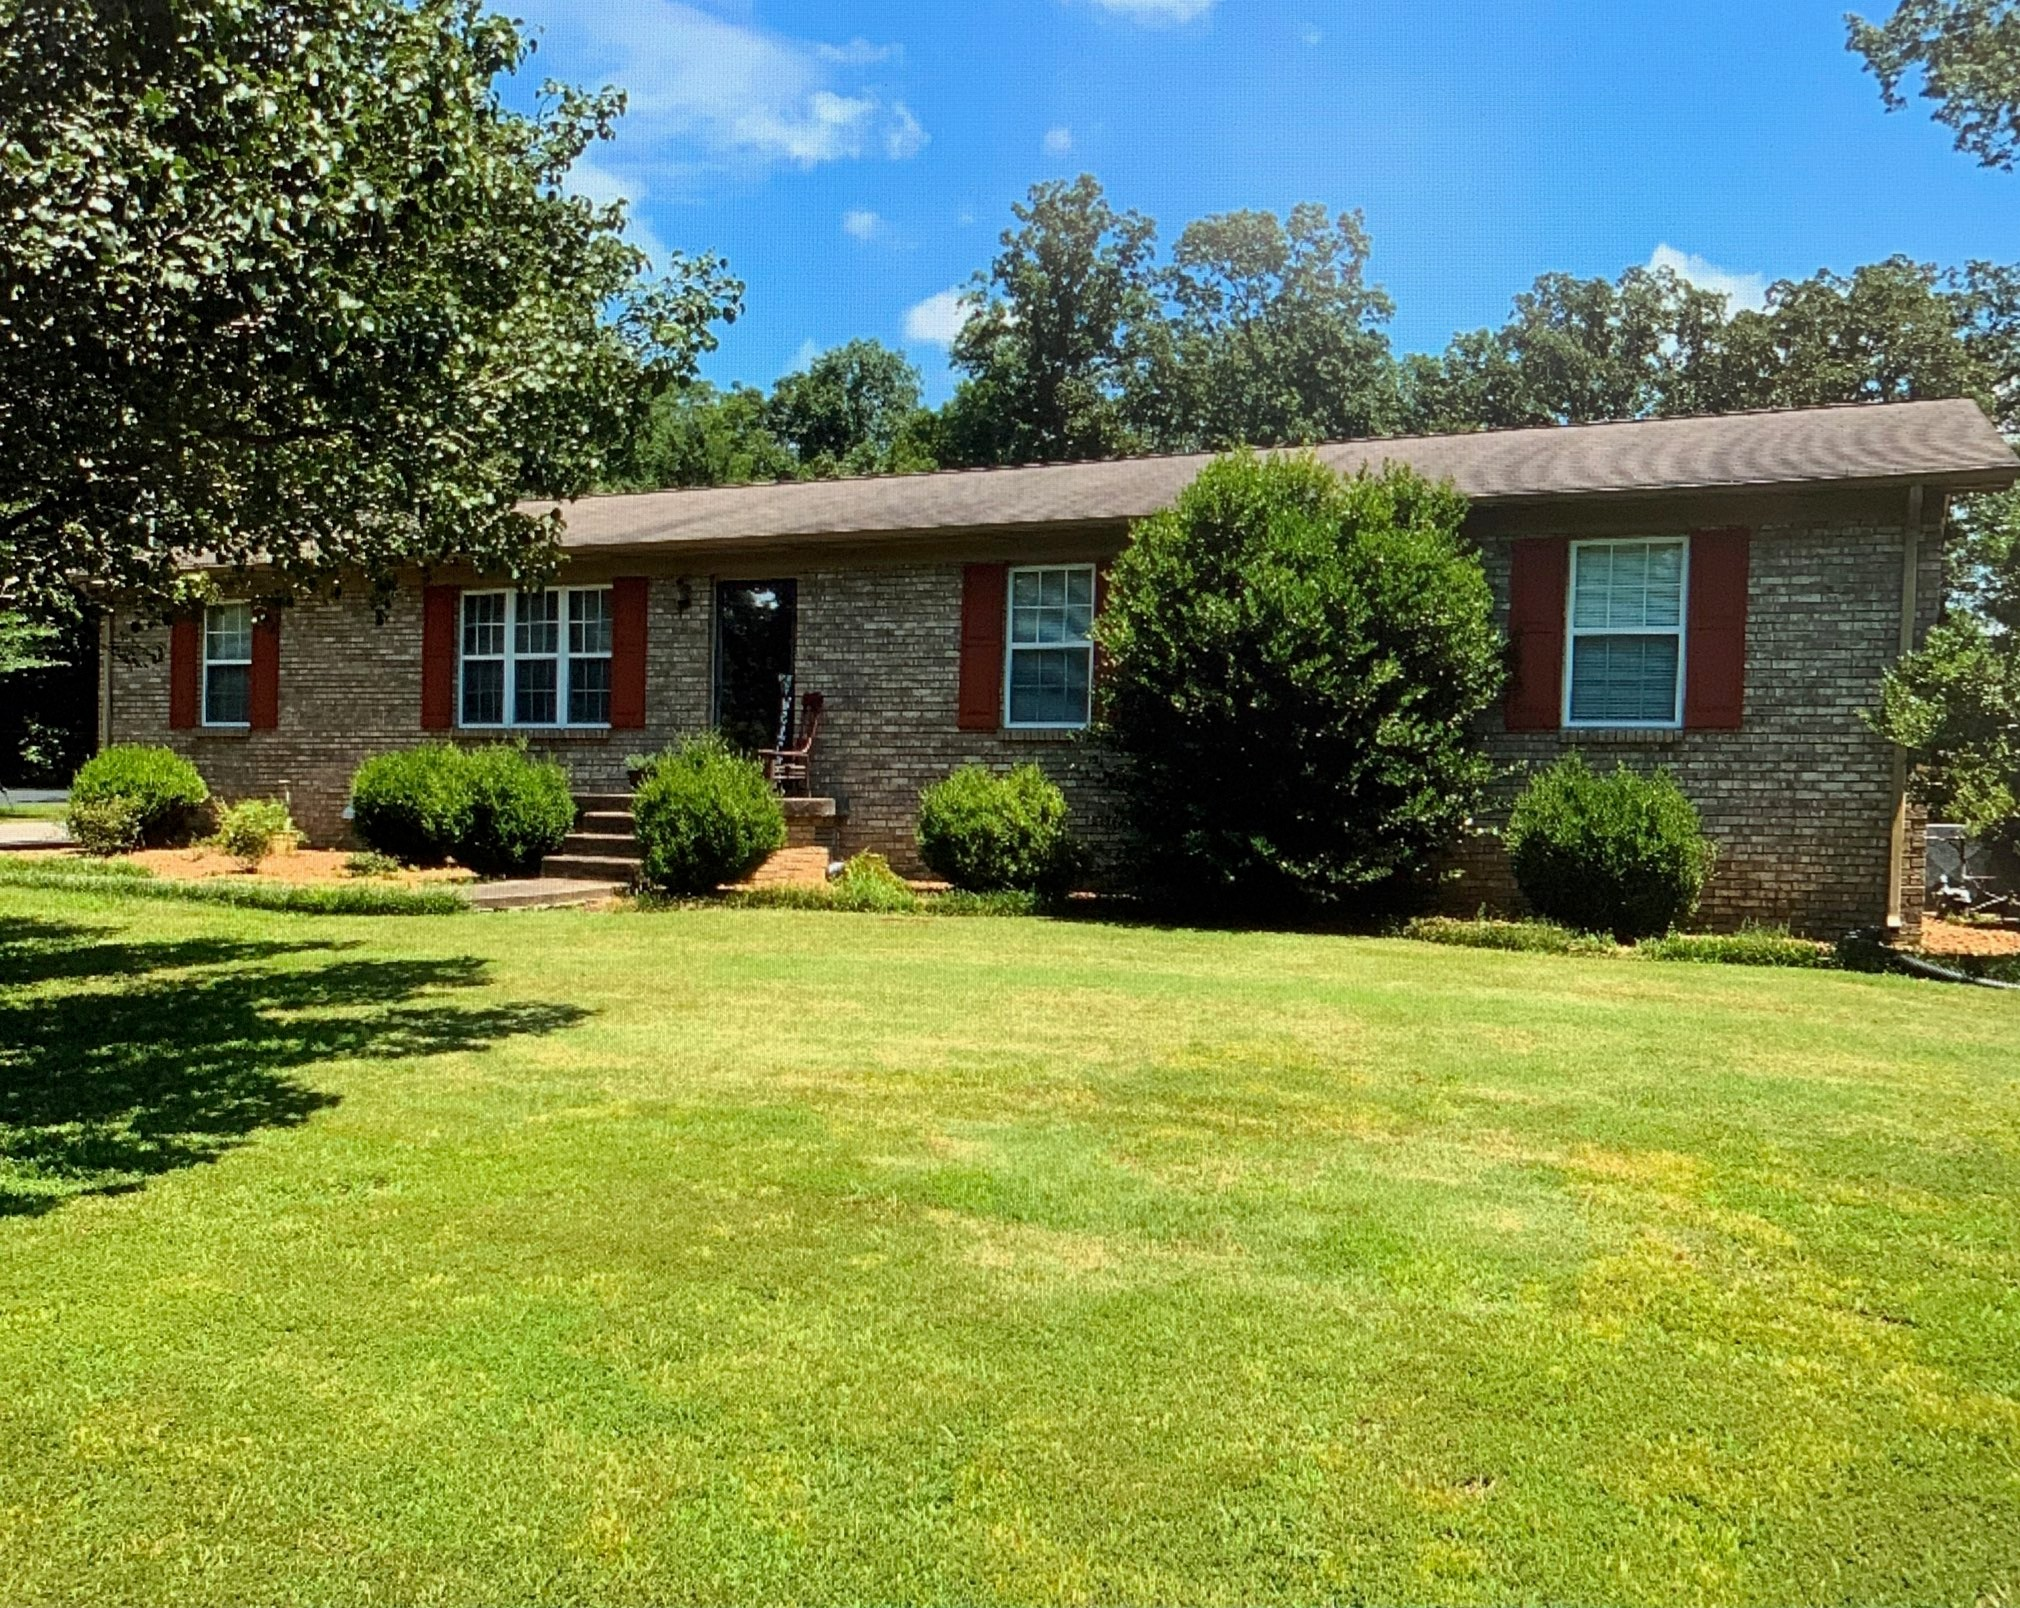 821 Oakland Dr, New Johnsonville, TN 37134 - New Johnsonville, TN real estate listing